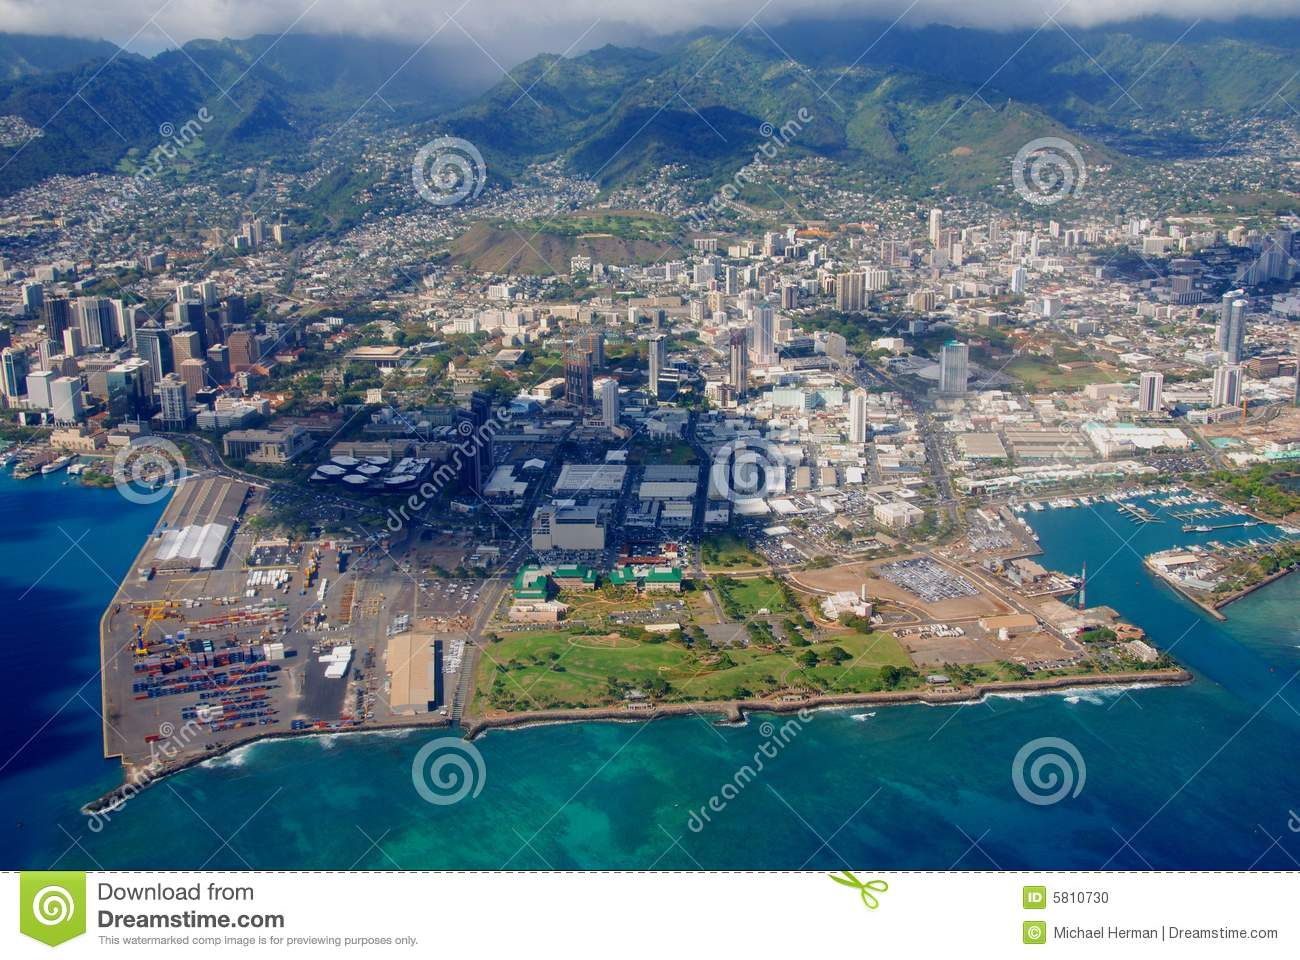 What time is it honolulu hawaii